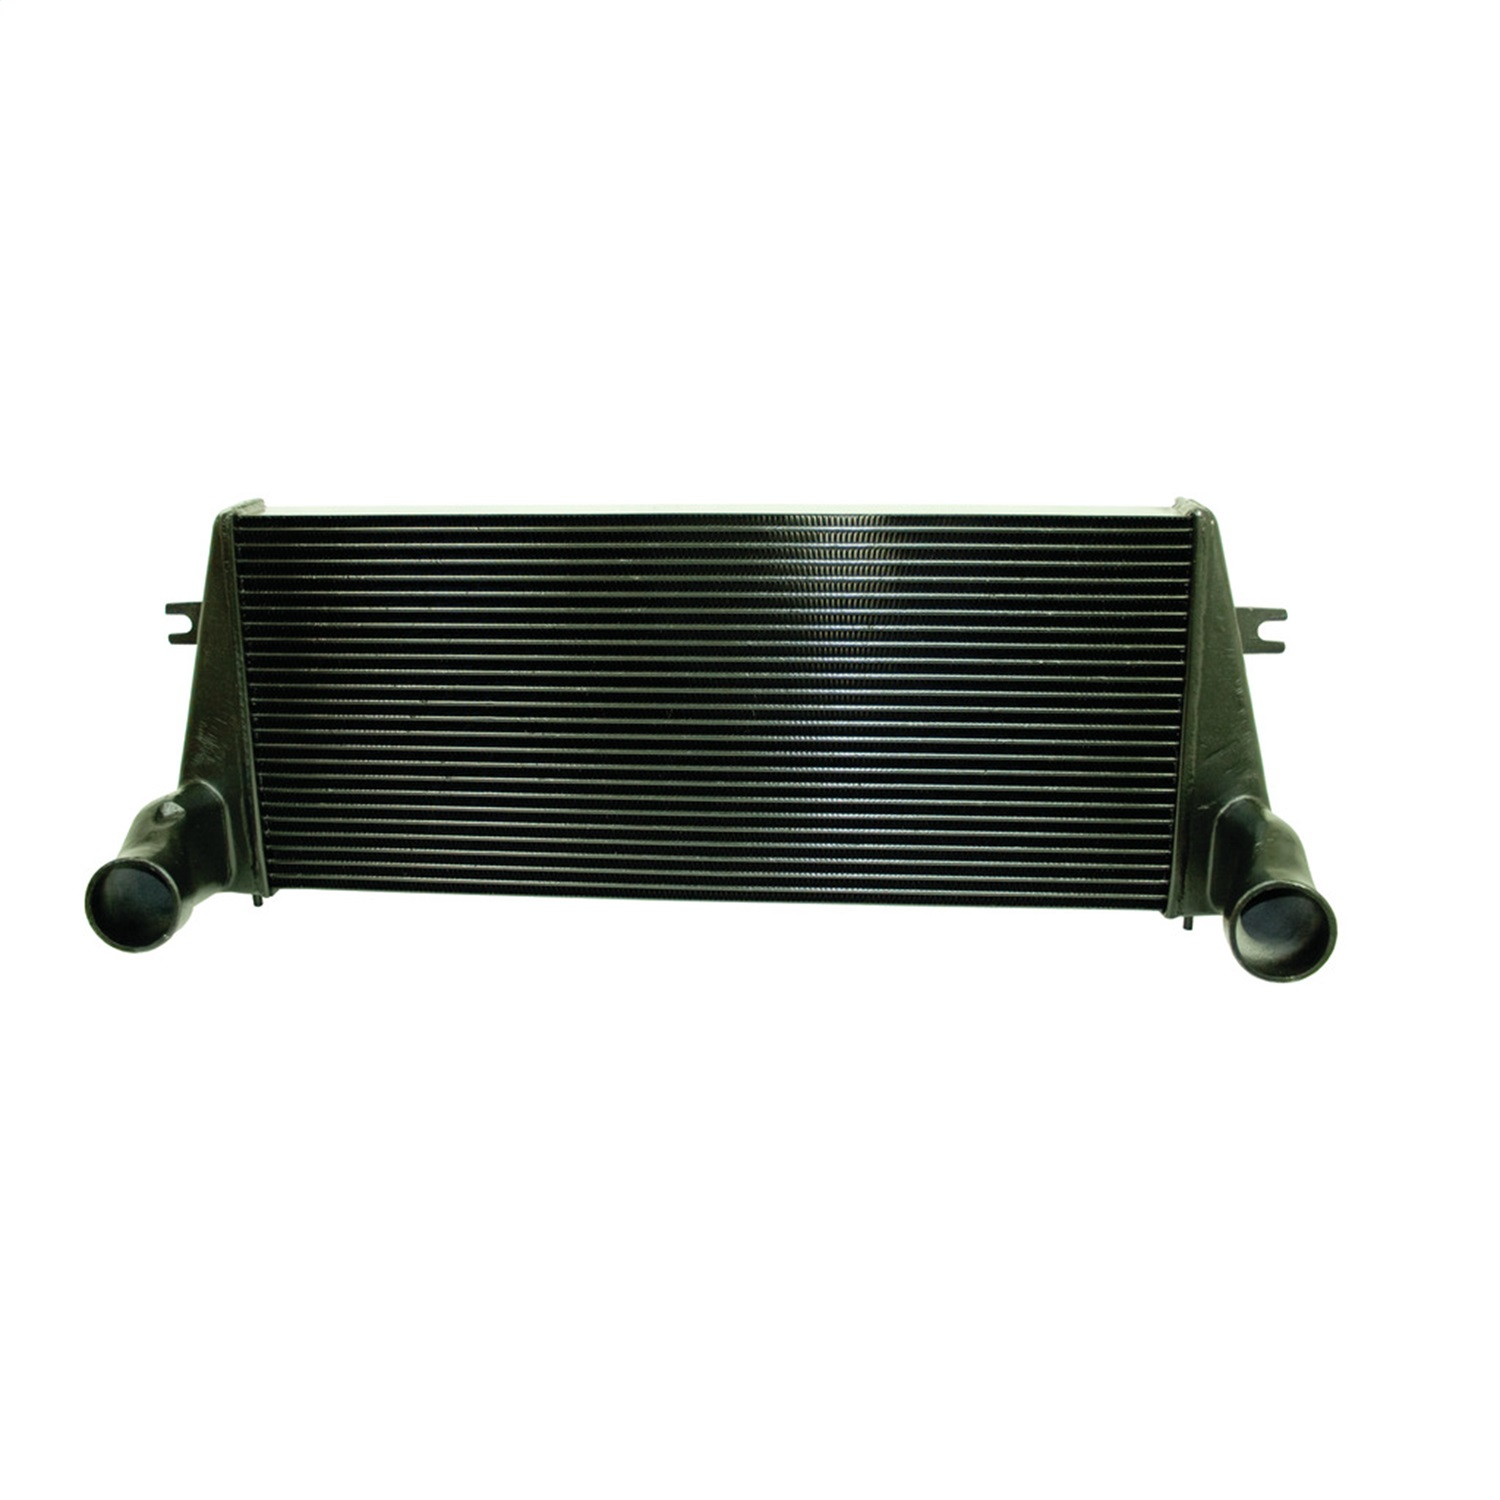 BD Diesel 1042520 Xtruded Charge-Air-Cooler Intercooler Fits Ram 2500 Ram 3500